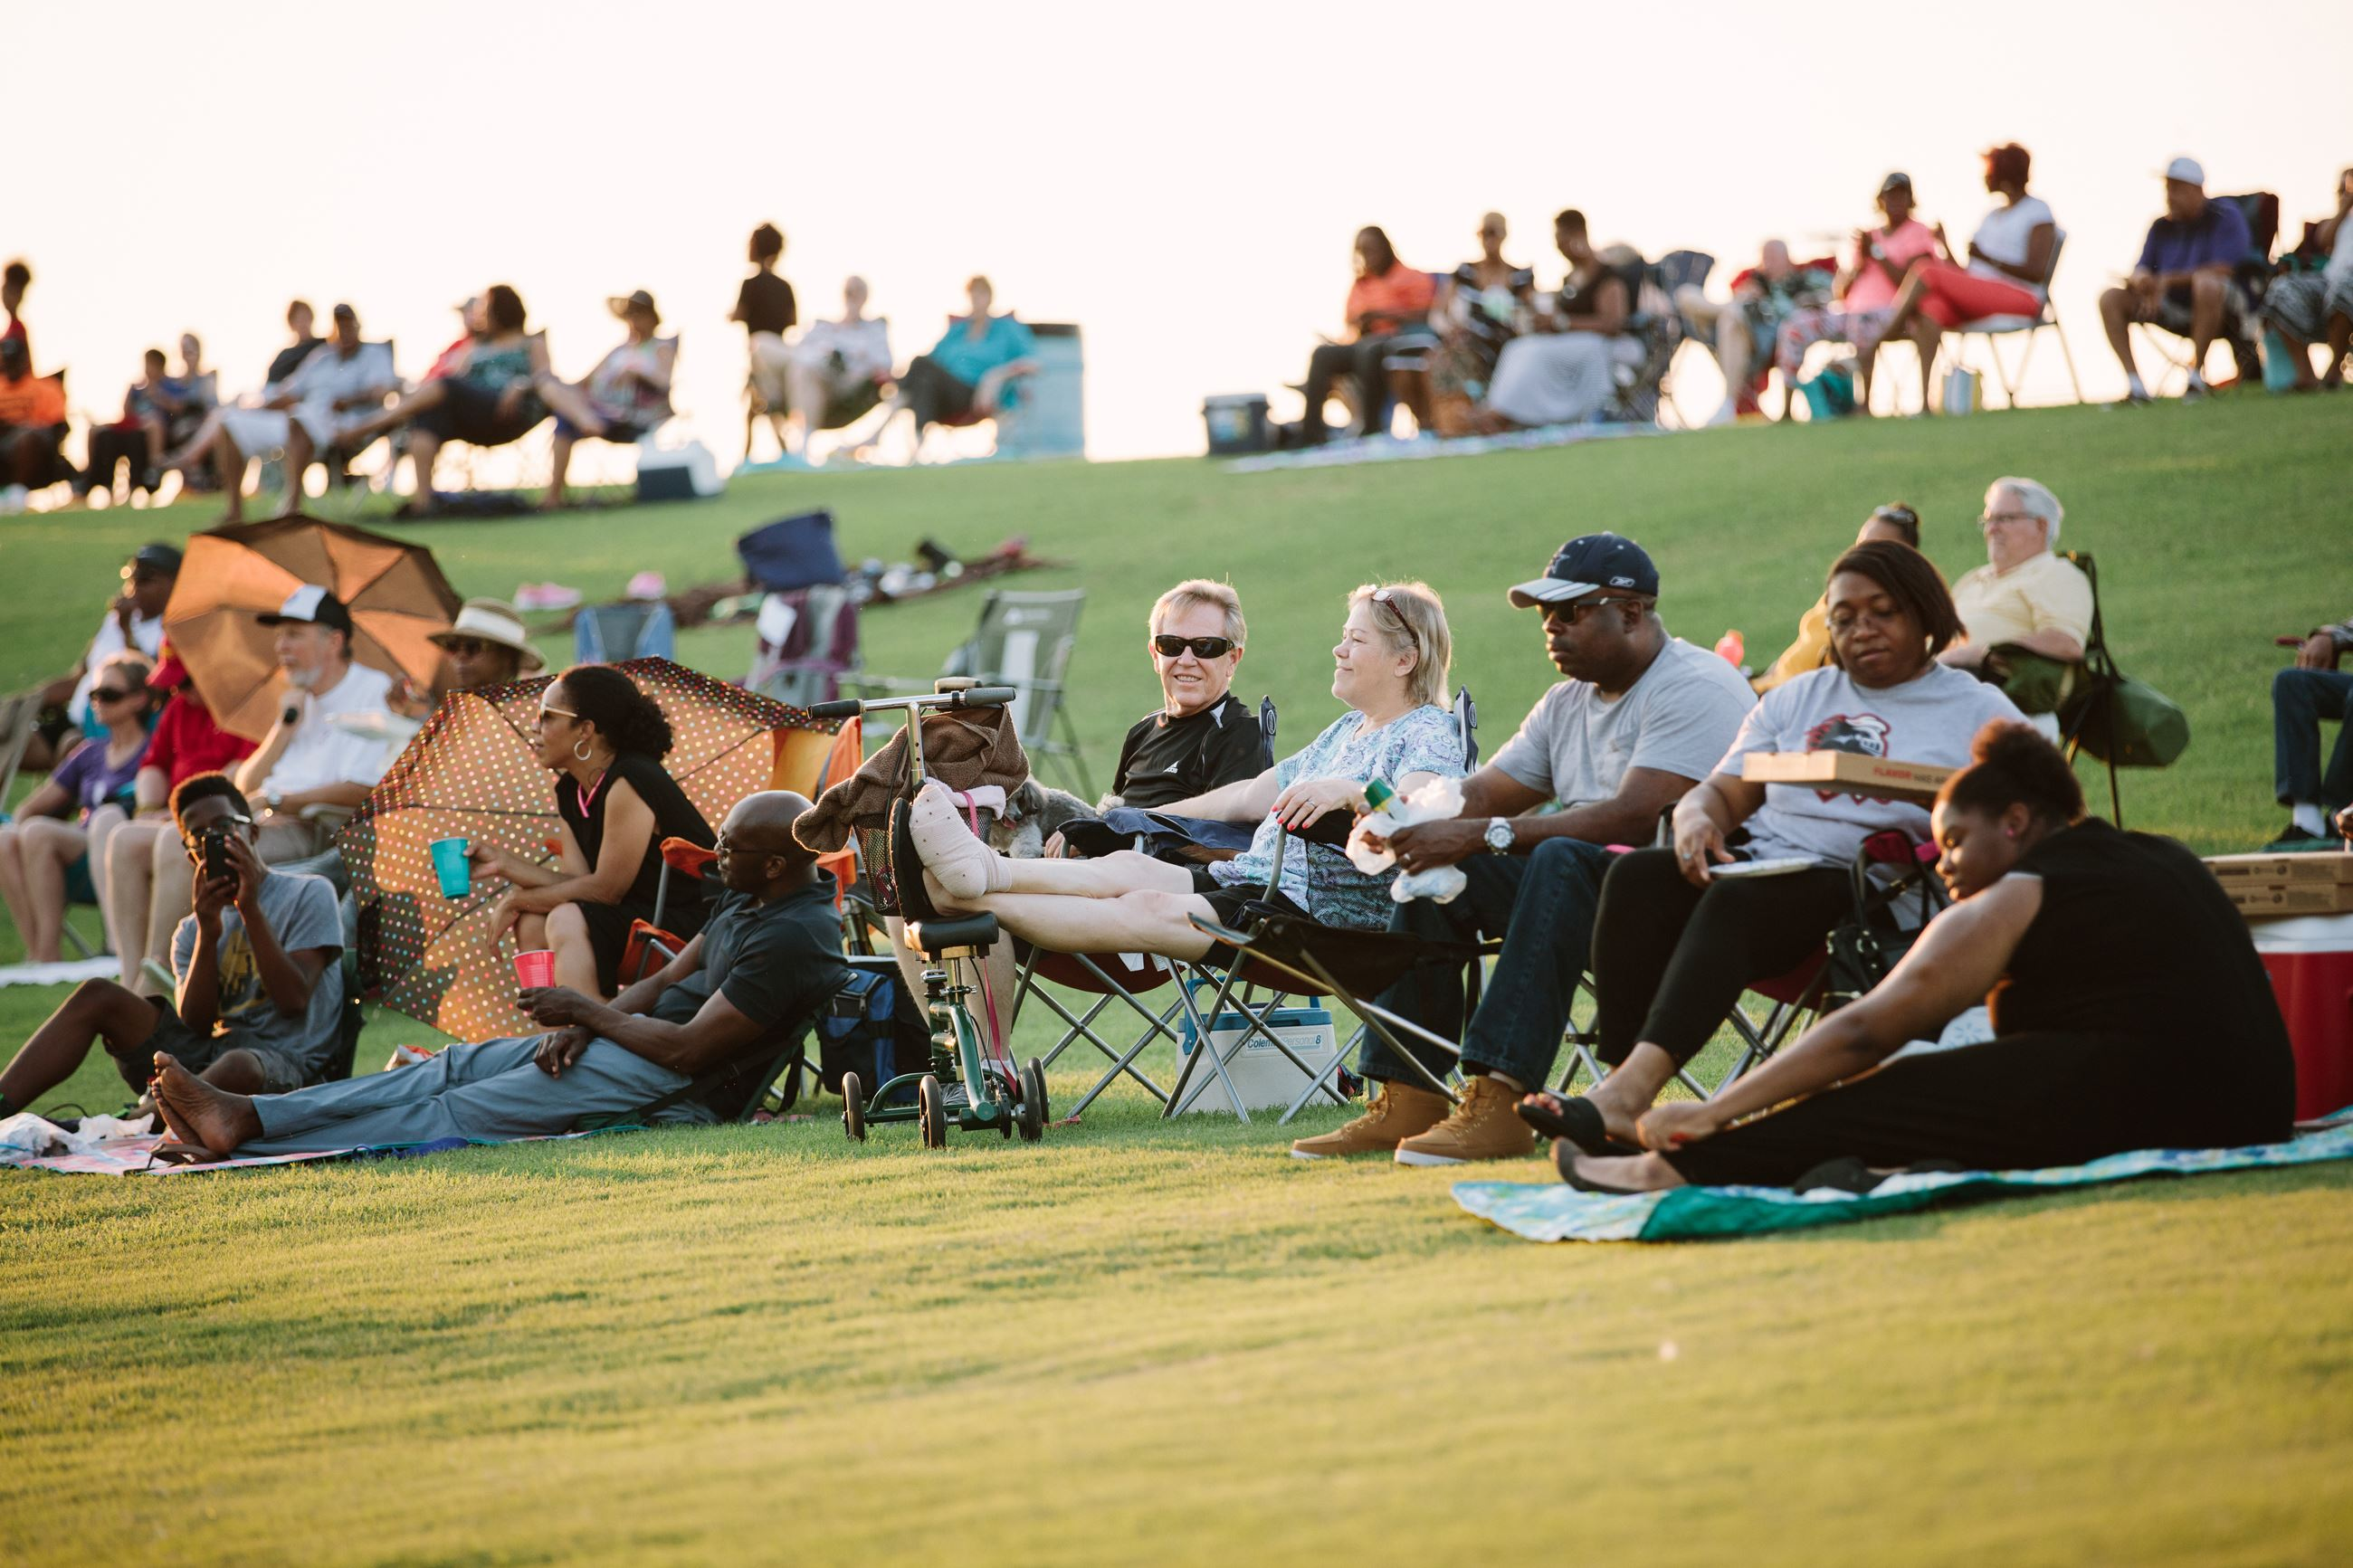 Concert-goers at Valley Ridge Park